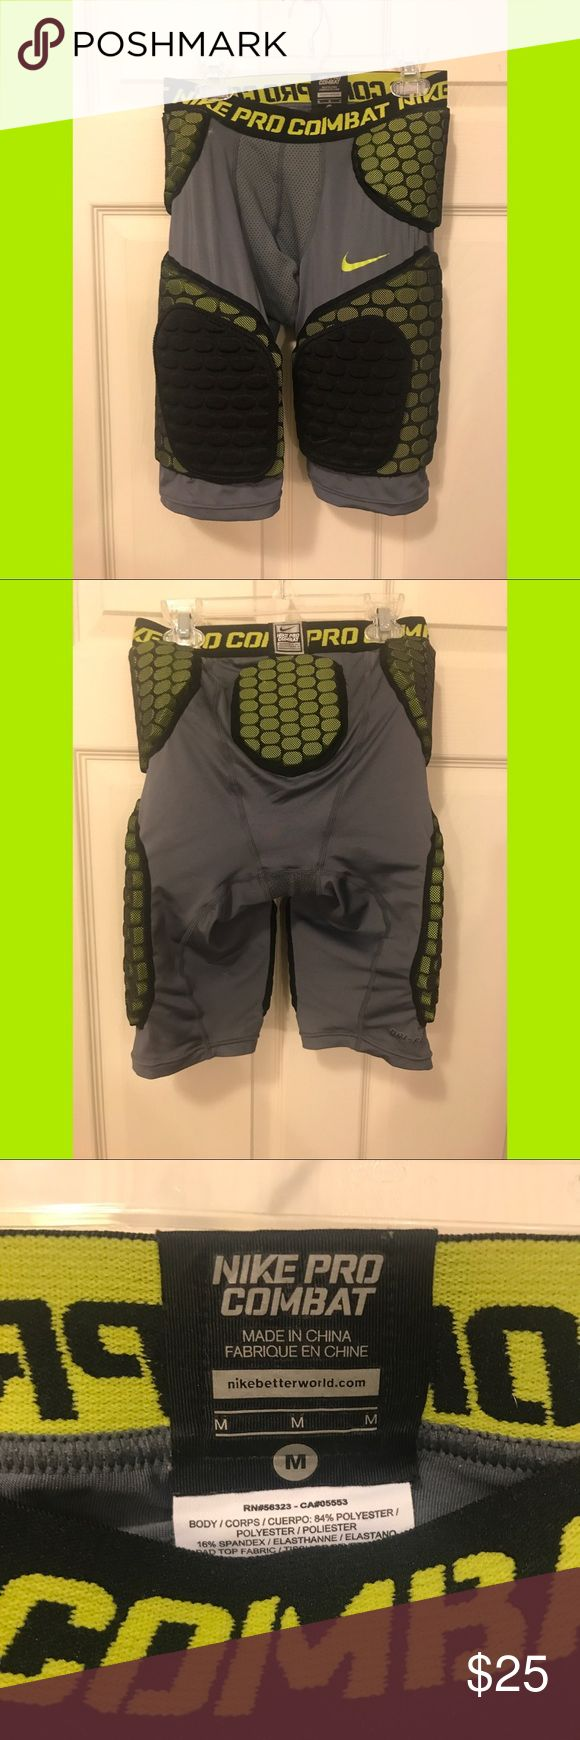 Nike Pro Combat Dri-Fit padded shorts Designed to be worn under football pants. Worn only once or twice. The colors are gray, lime green, and black. Nike Shorts Athletic